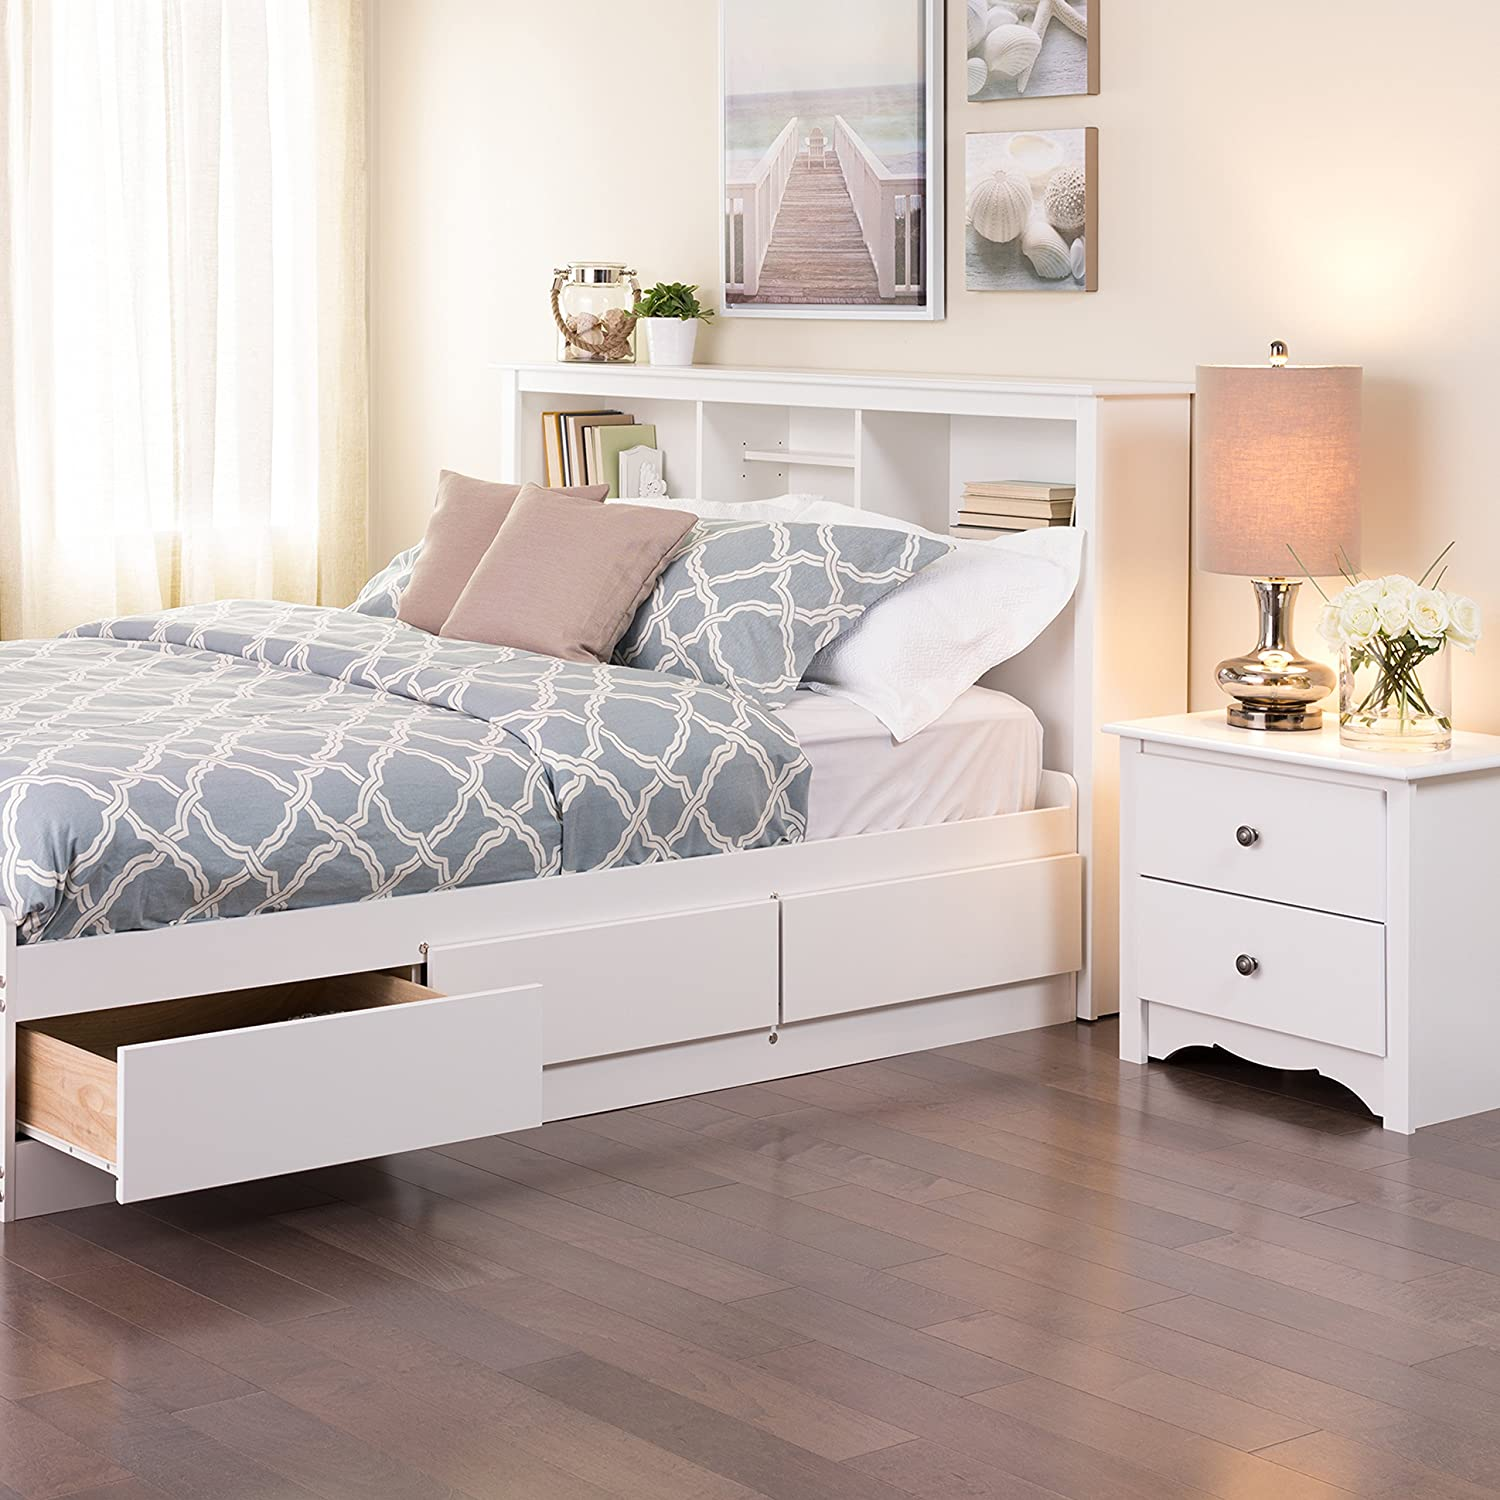 Be bed frames with headboard storage - Amazon Com Prepac Monterey White Queen Storage Headboard Bedroom Armoires